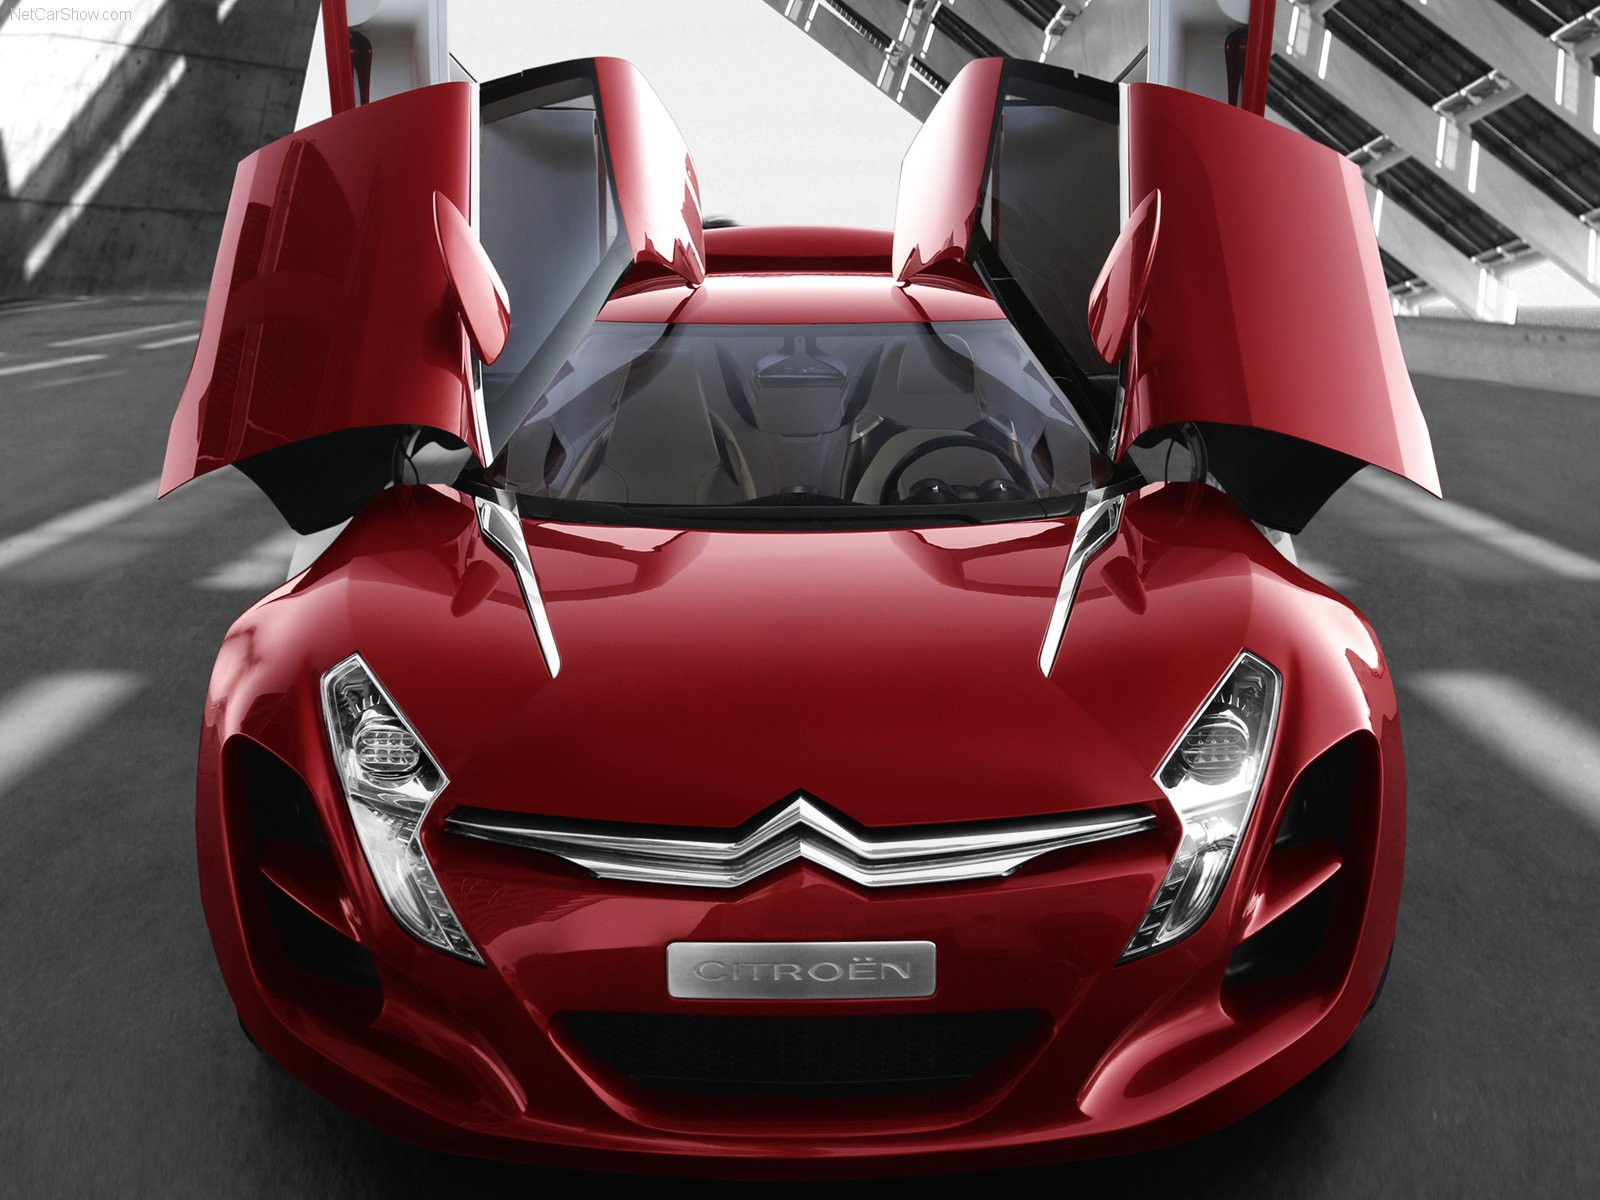 Sweet Citroen Wallpaper